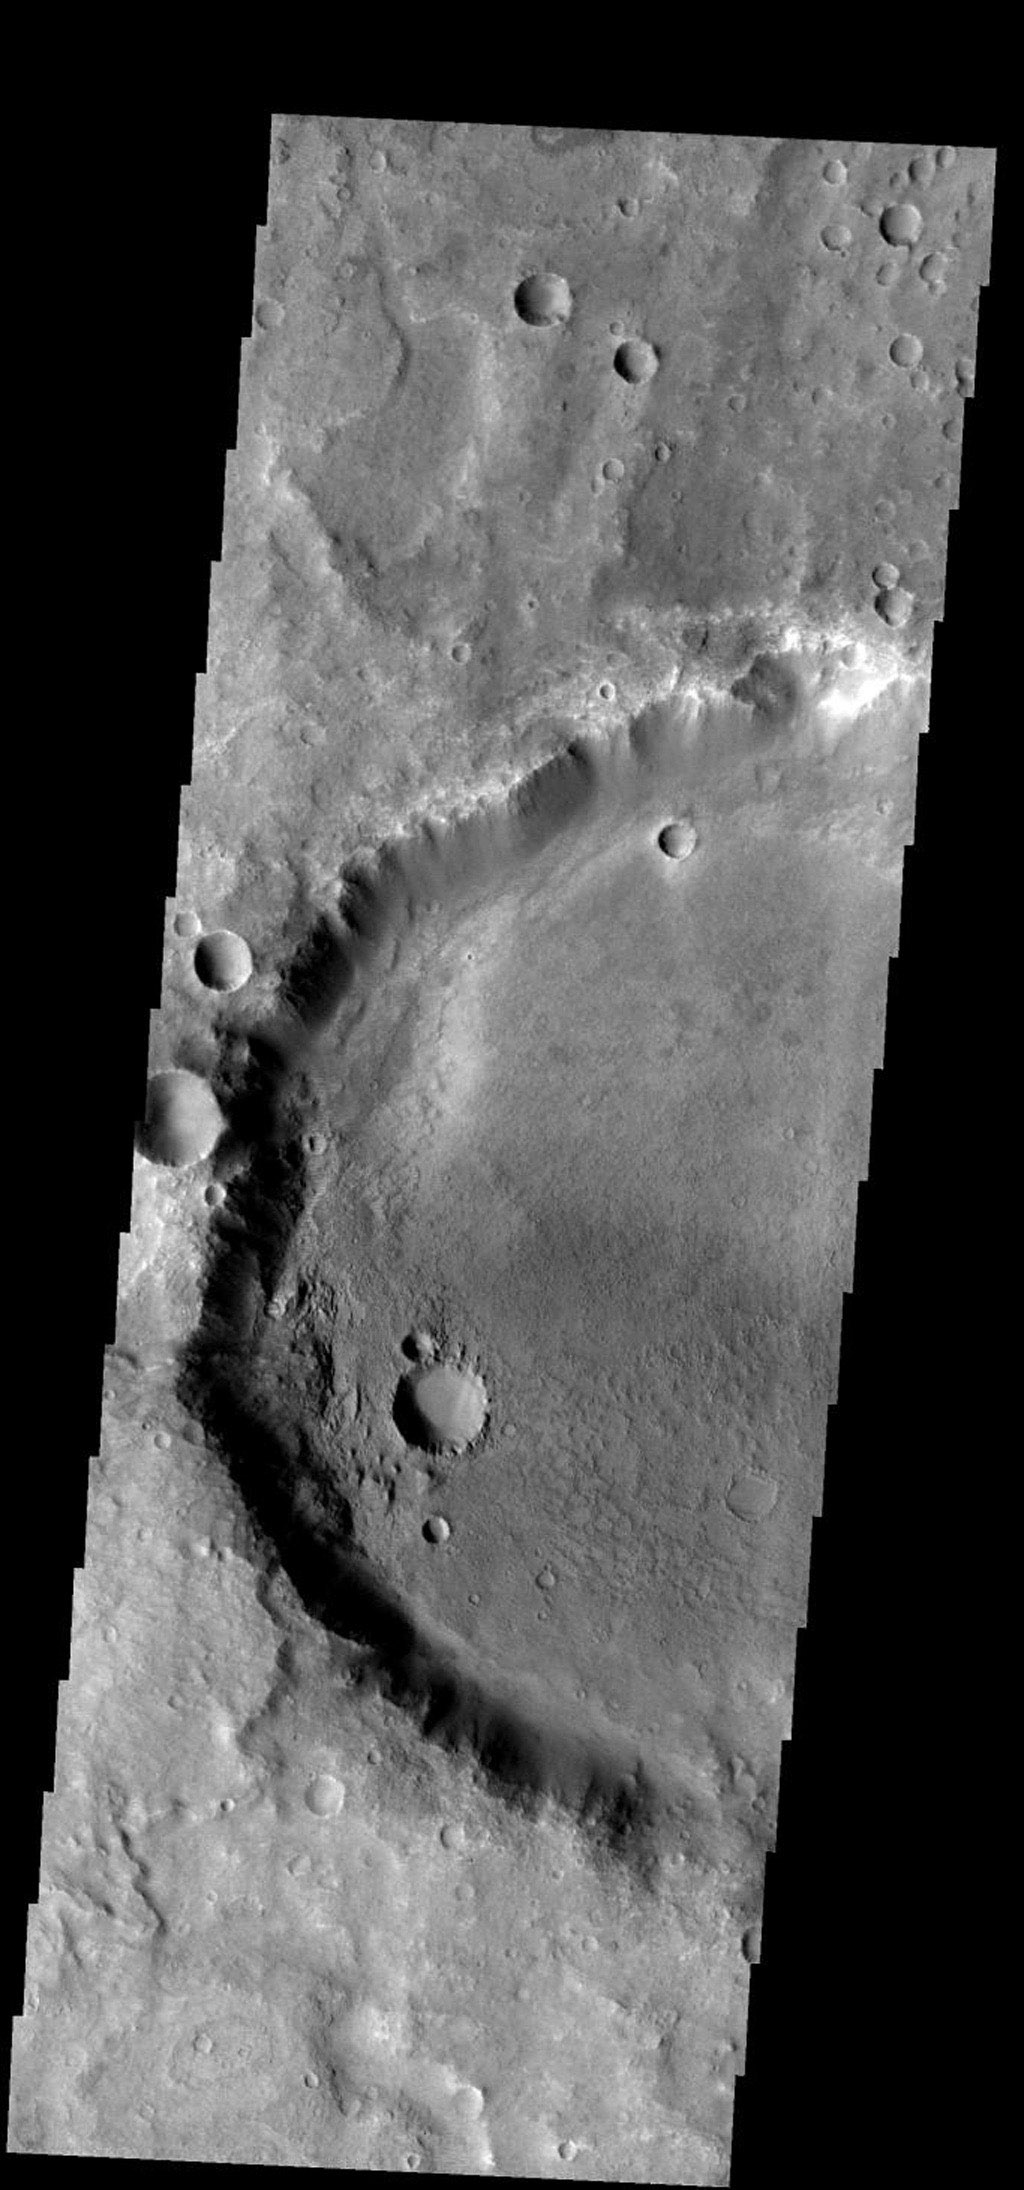 The floor of this crater near its southwestern rim is rougher that the rest of the crater floor. Some process of change is working only in this area on Mars as seen by NASA's Mars Odyssey spacecraft.